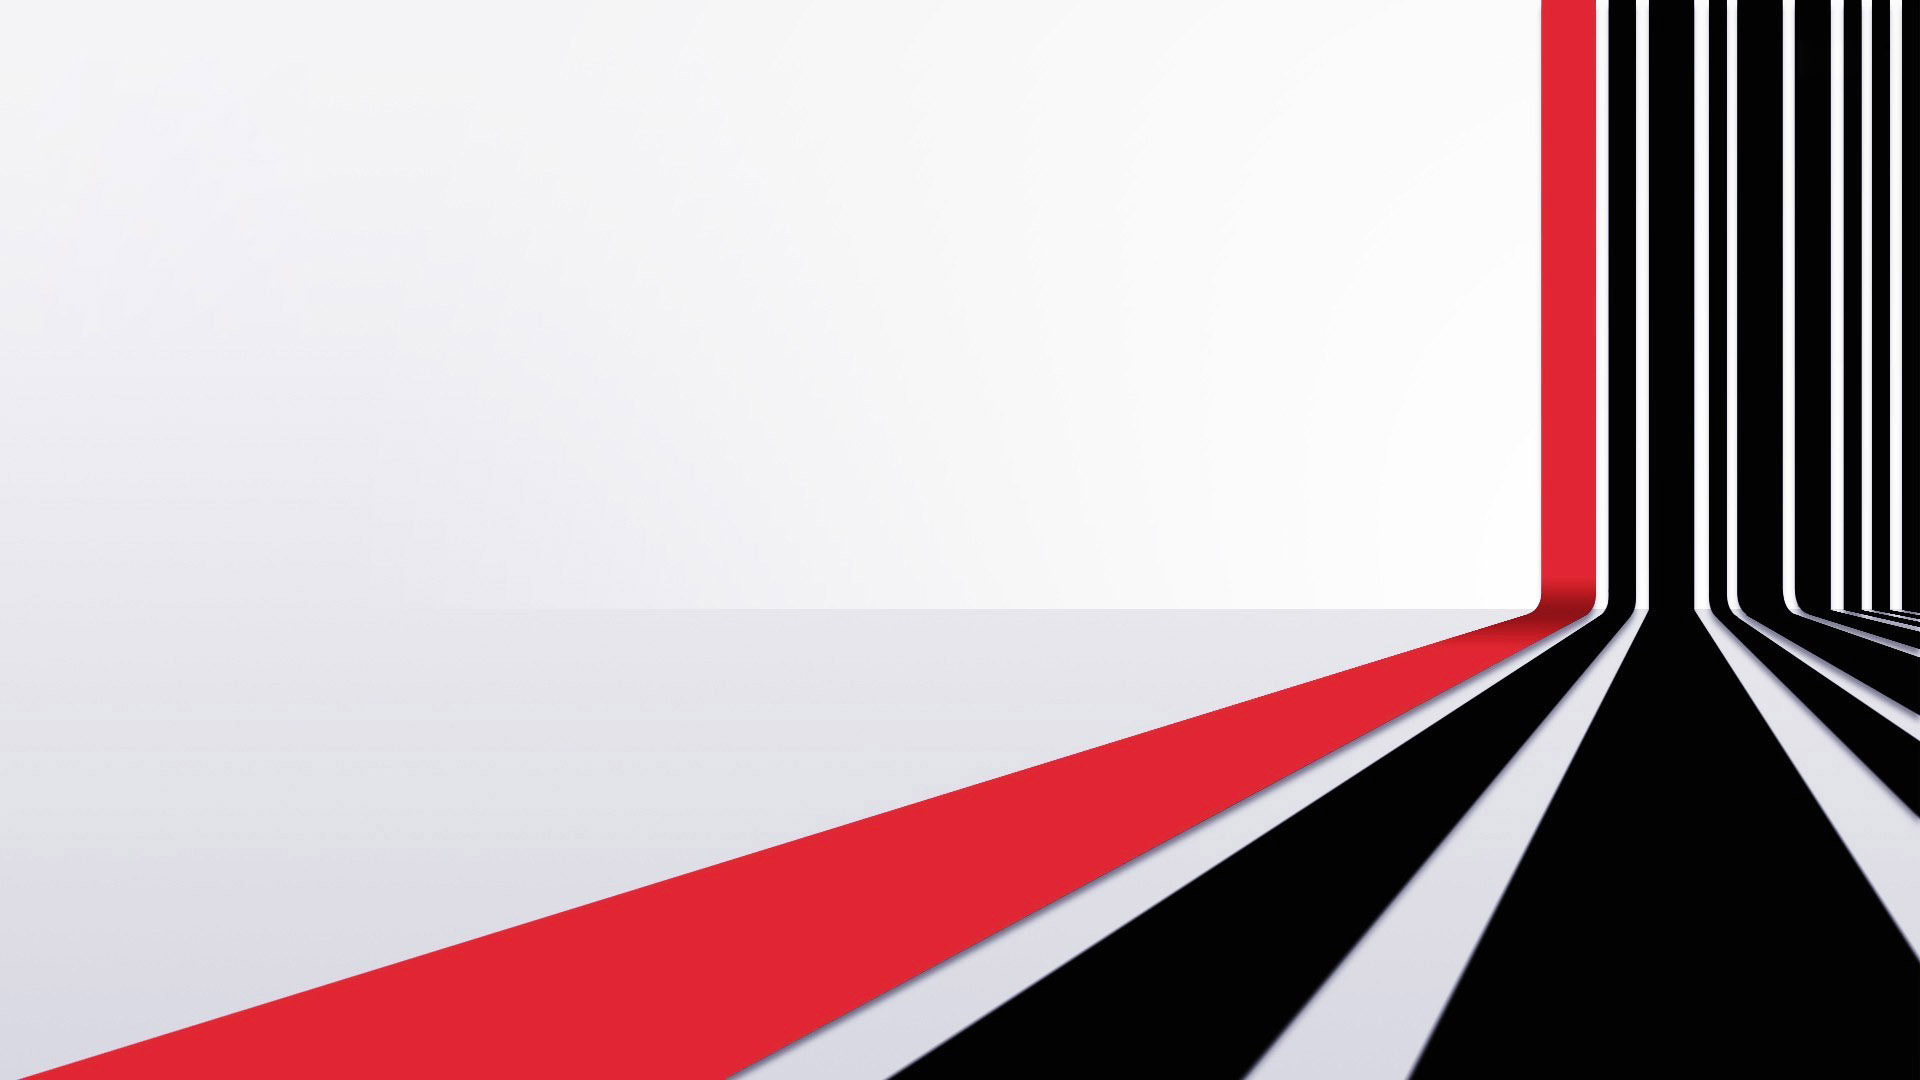 Red And White HD Wallpaper